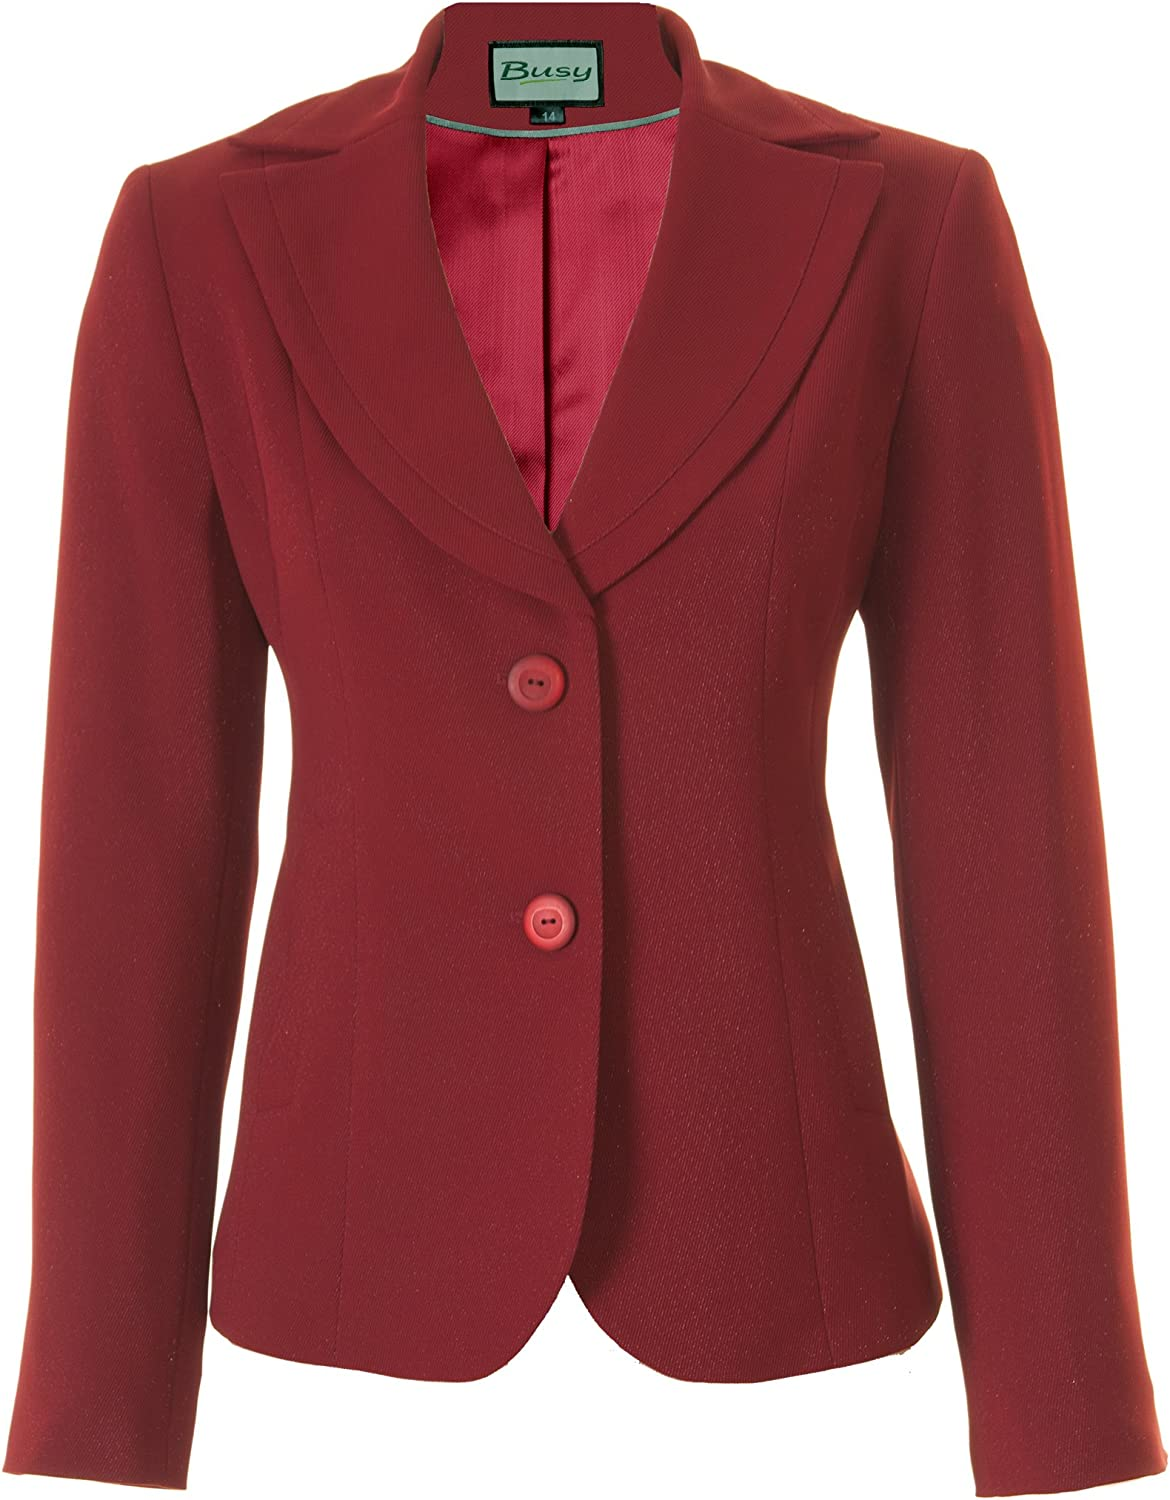 Busy Womens Suit Jacket Sparkle Red